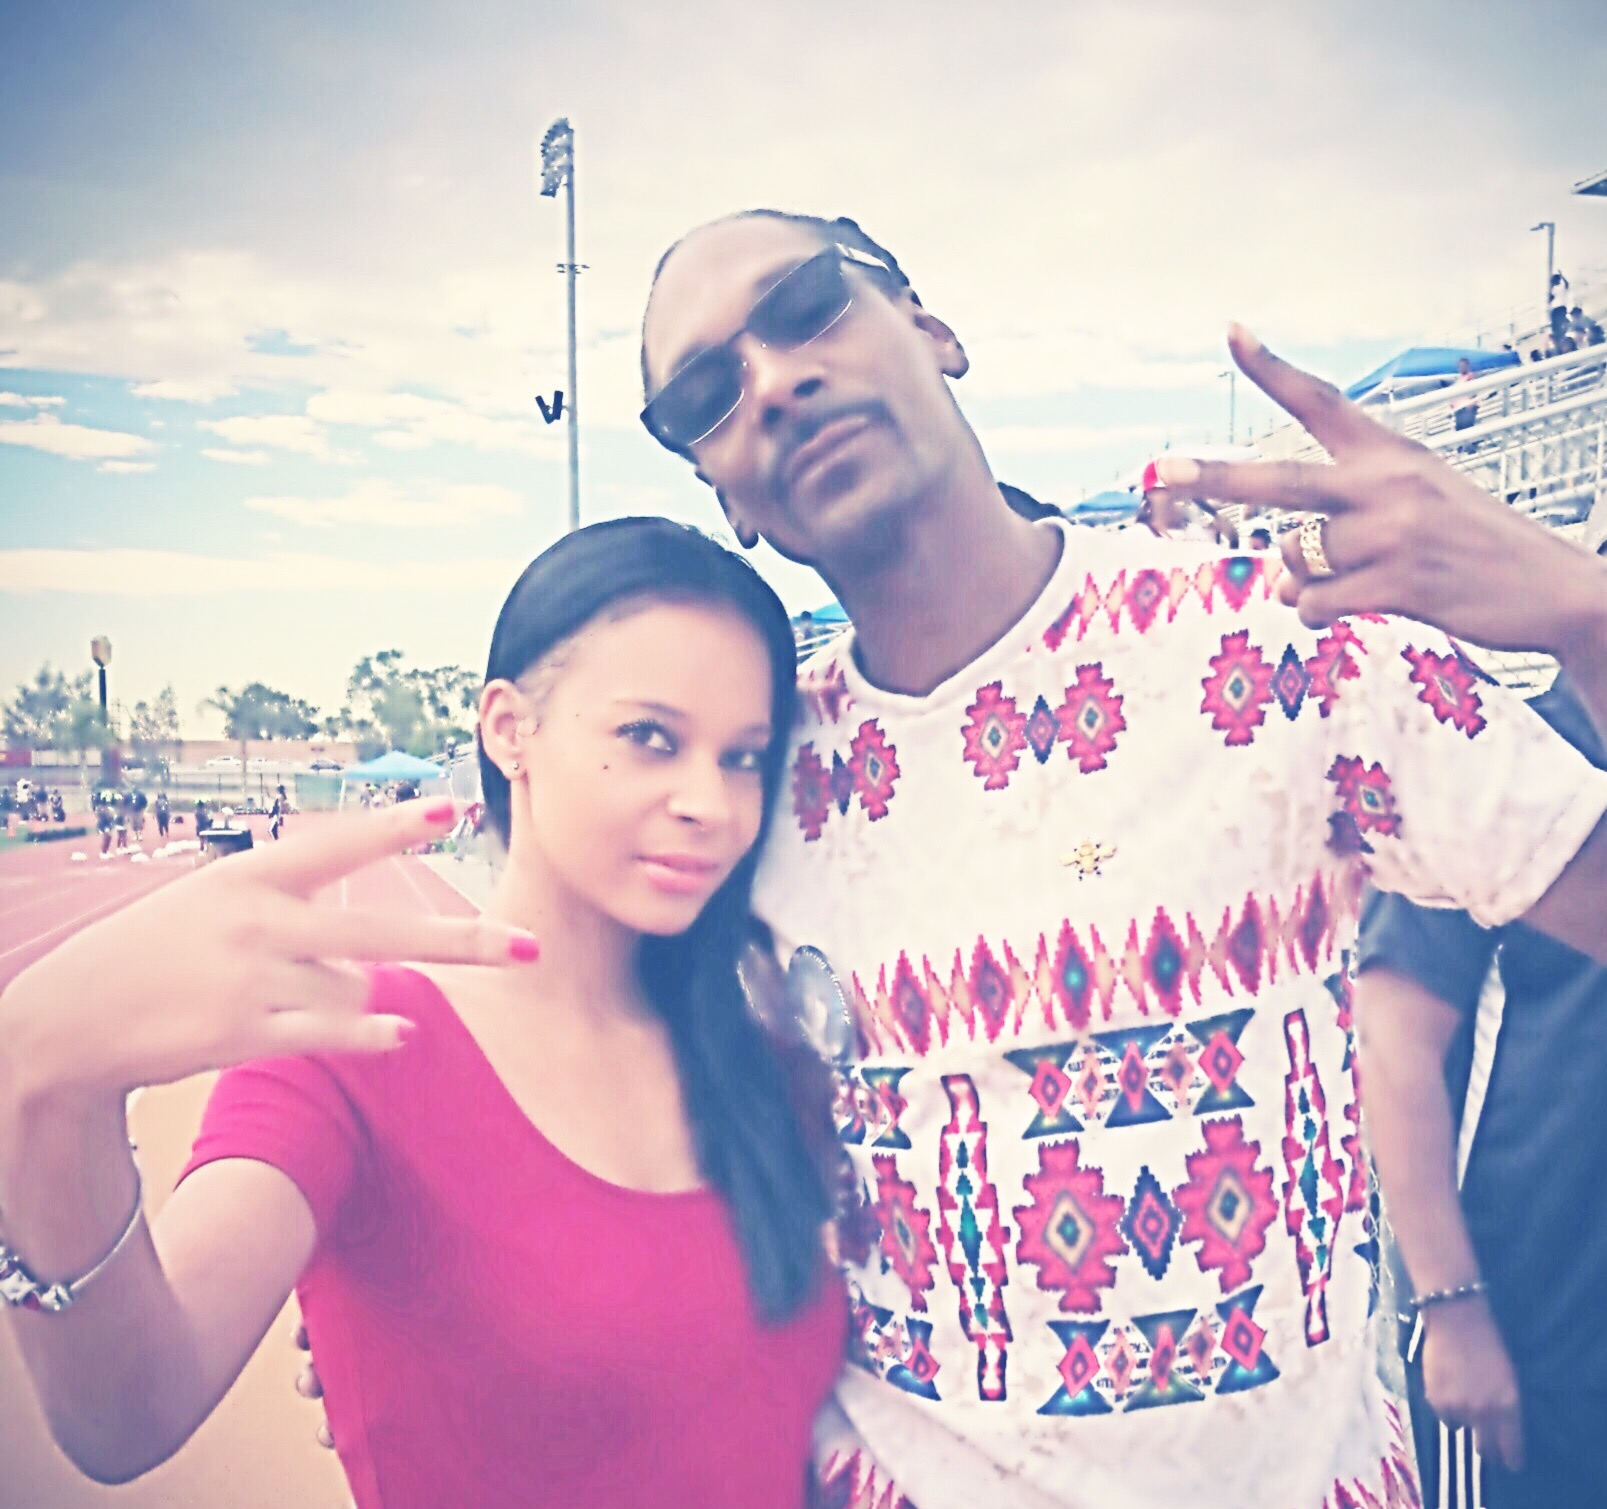 Post interview with Snoop Dogg -